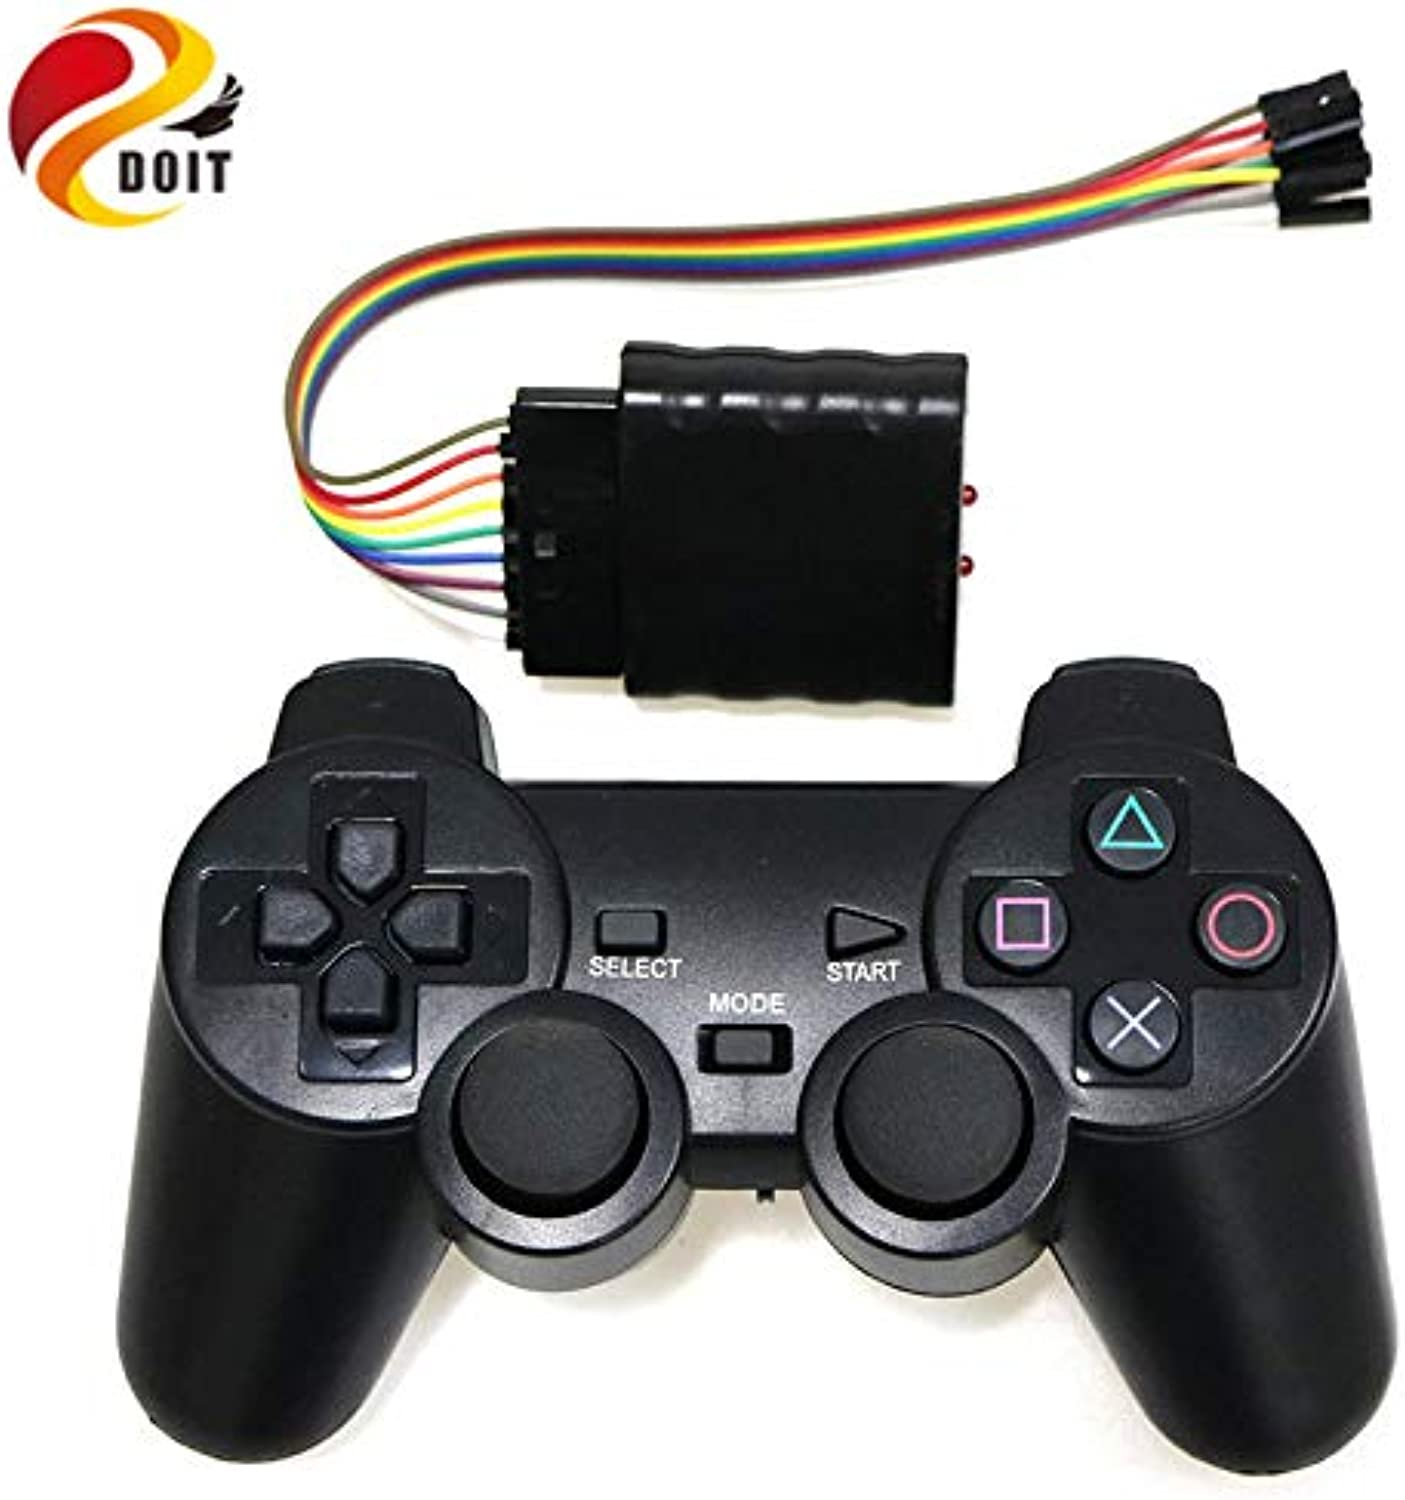 Generic DOIT Robot Dedicated Wireless Remote Control  Supporting Supporting Supporting 32 Channel Servo Controller ps2 Handle  Remote 3 Wire with 3 pin RC Toy aae3b3